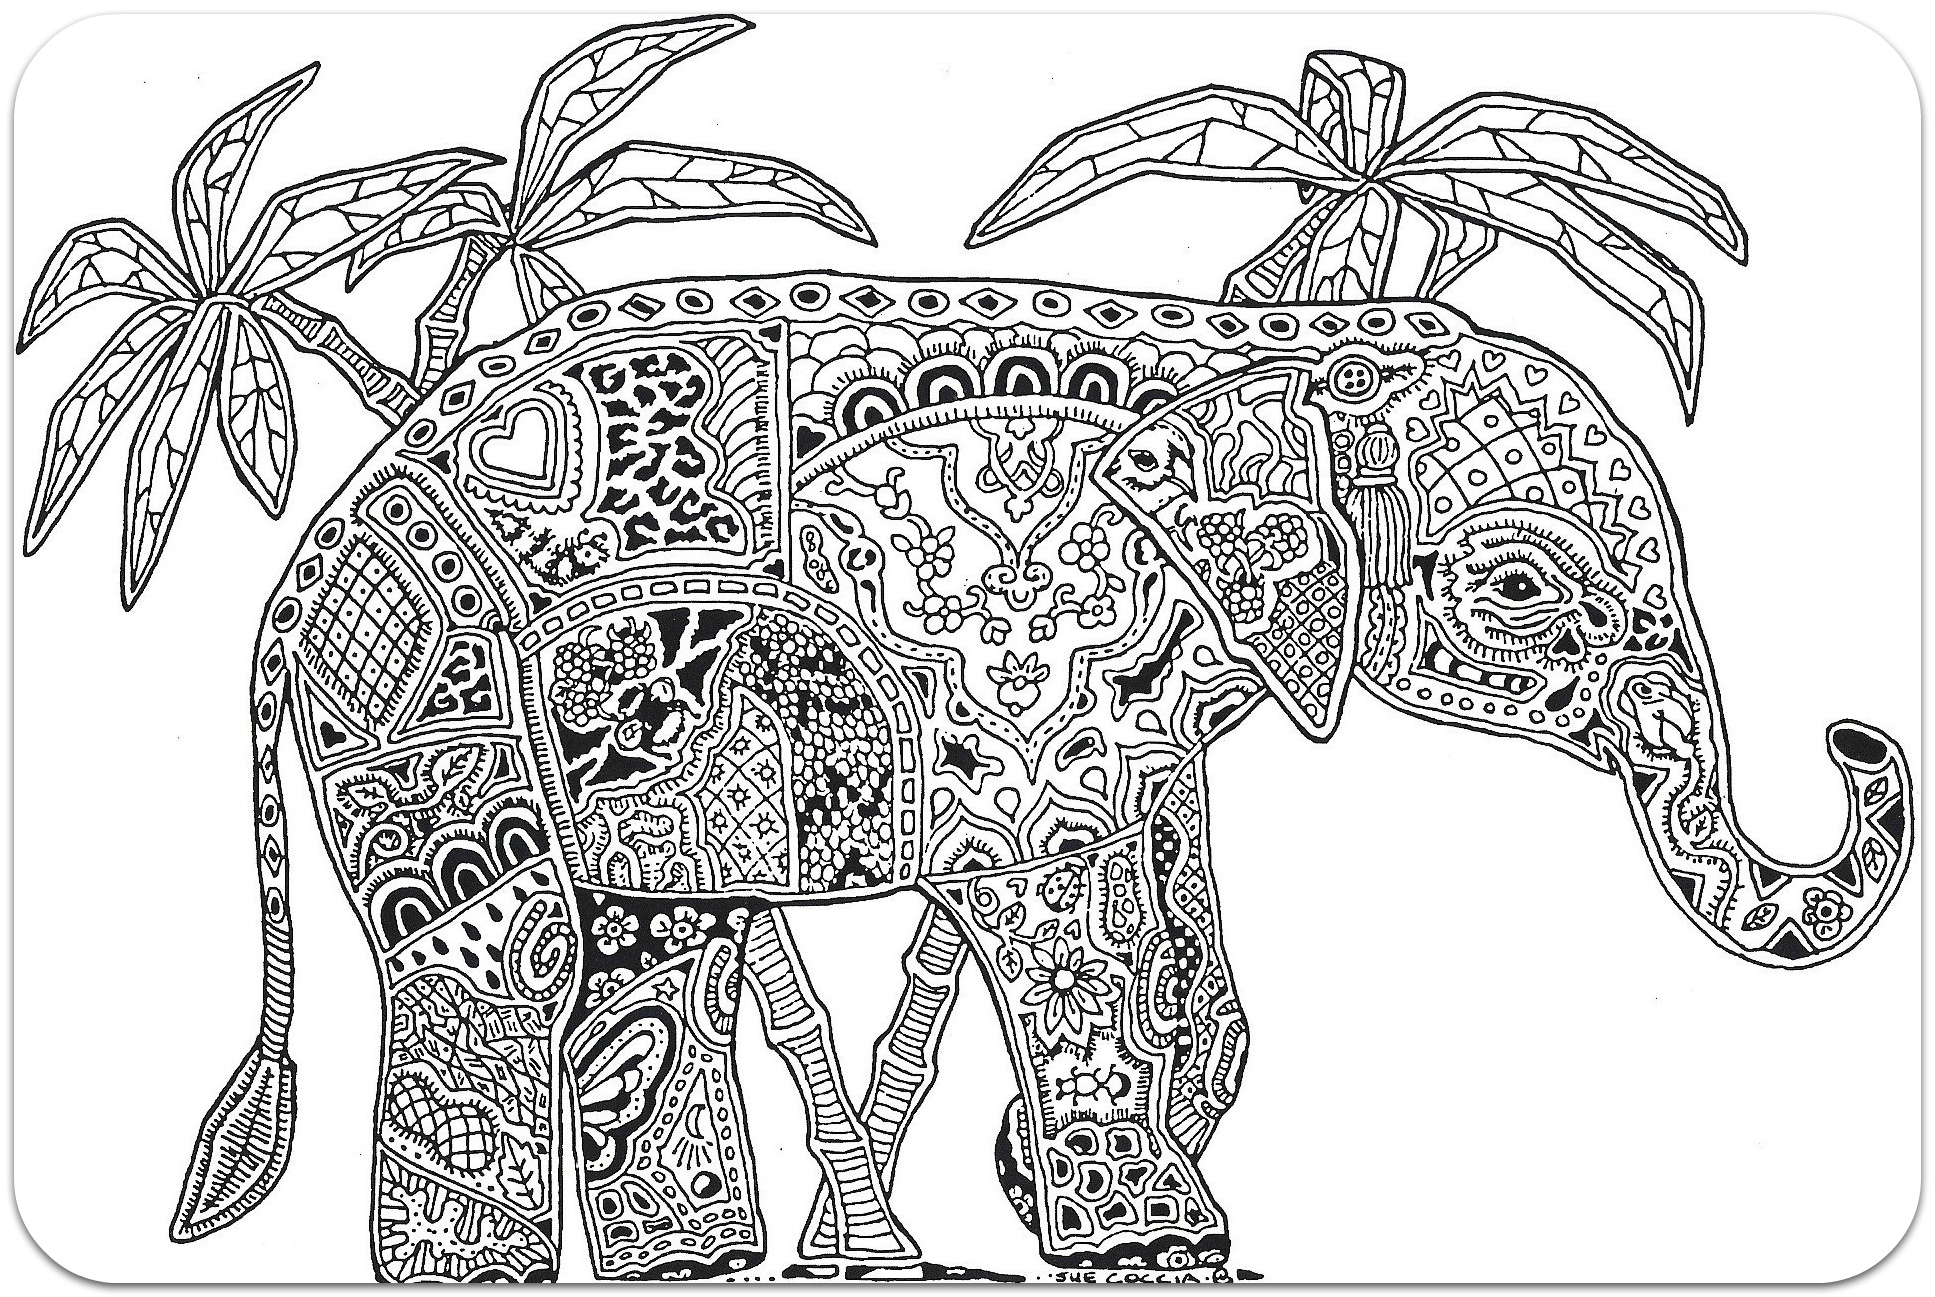 Coloring for adults, Coloring Antistress, тварини, travel, sophisticated coloring antistress, животные, elephantanimals